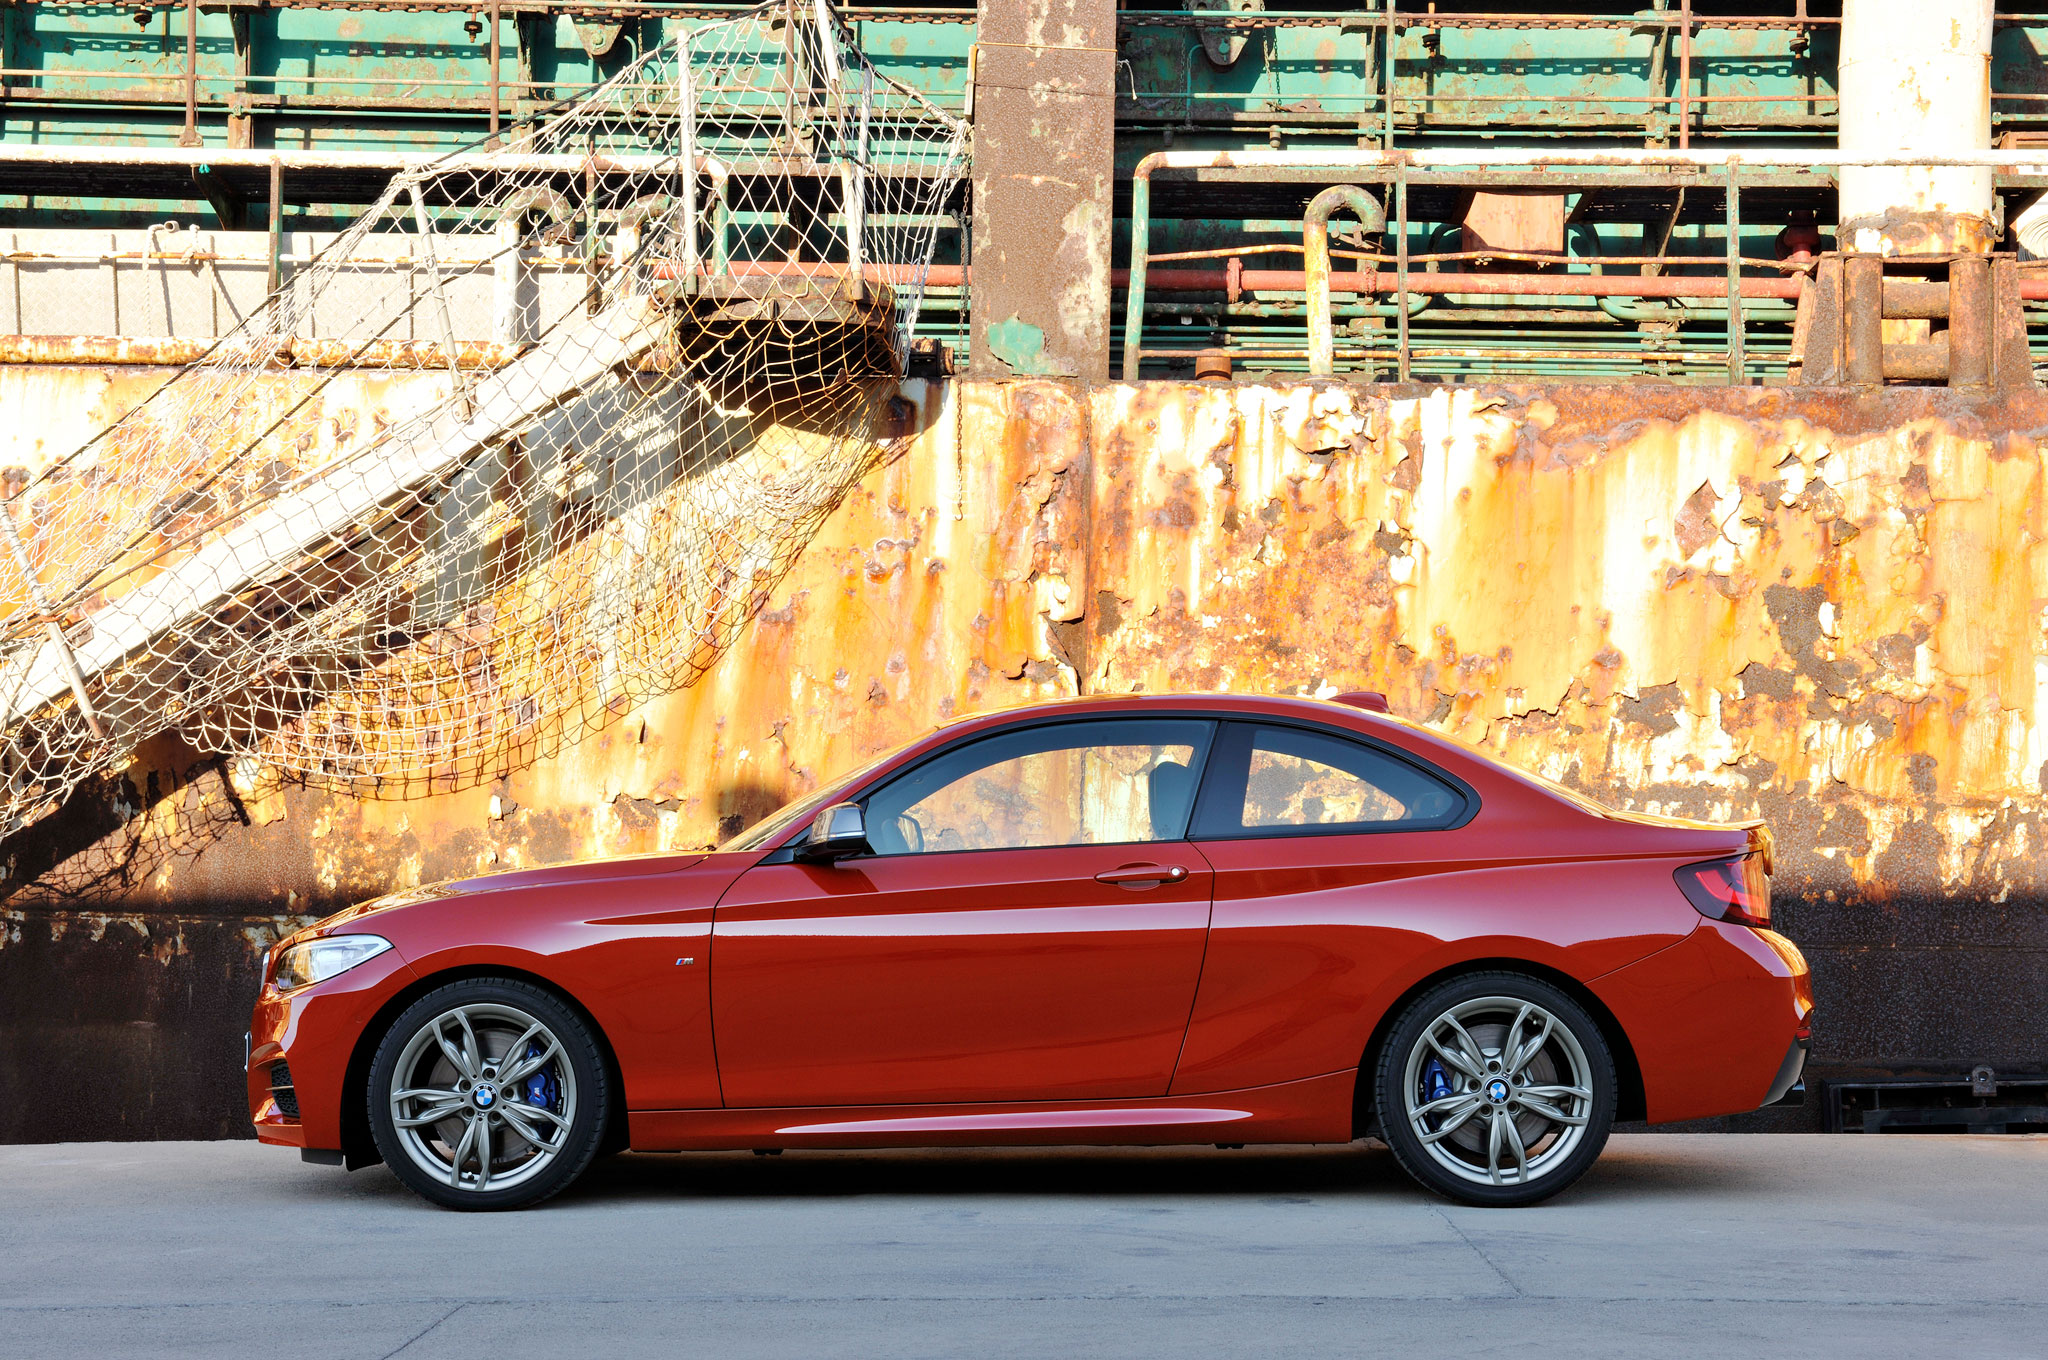 2014-BMW-2-Series-Coupe-side-02.jpg